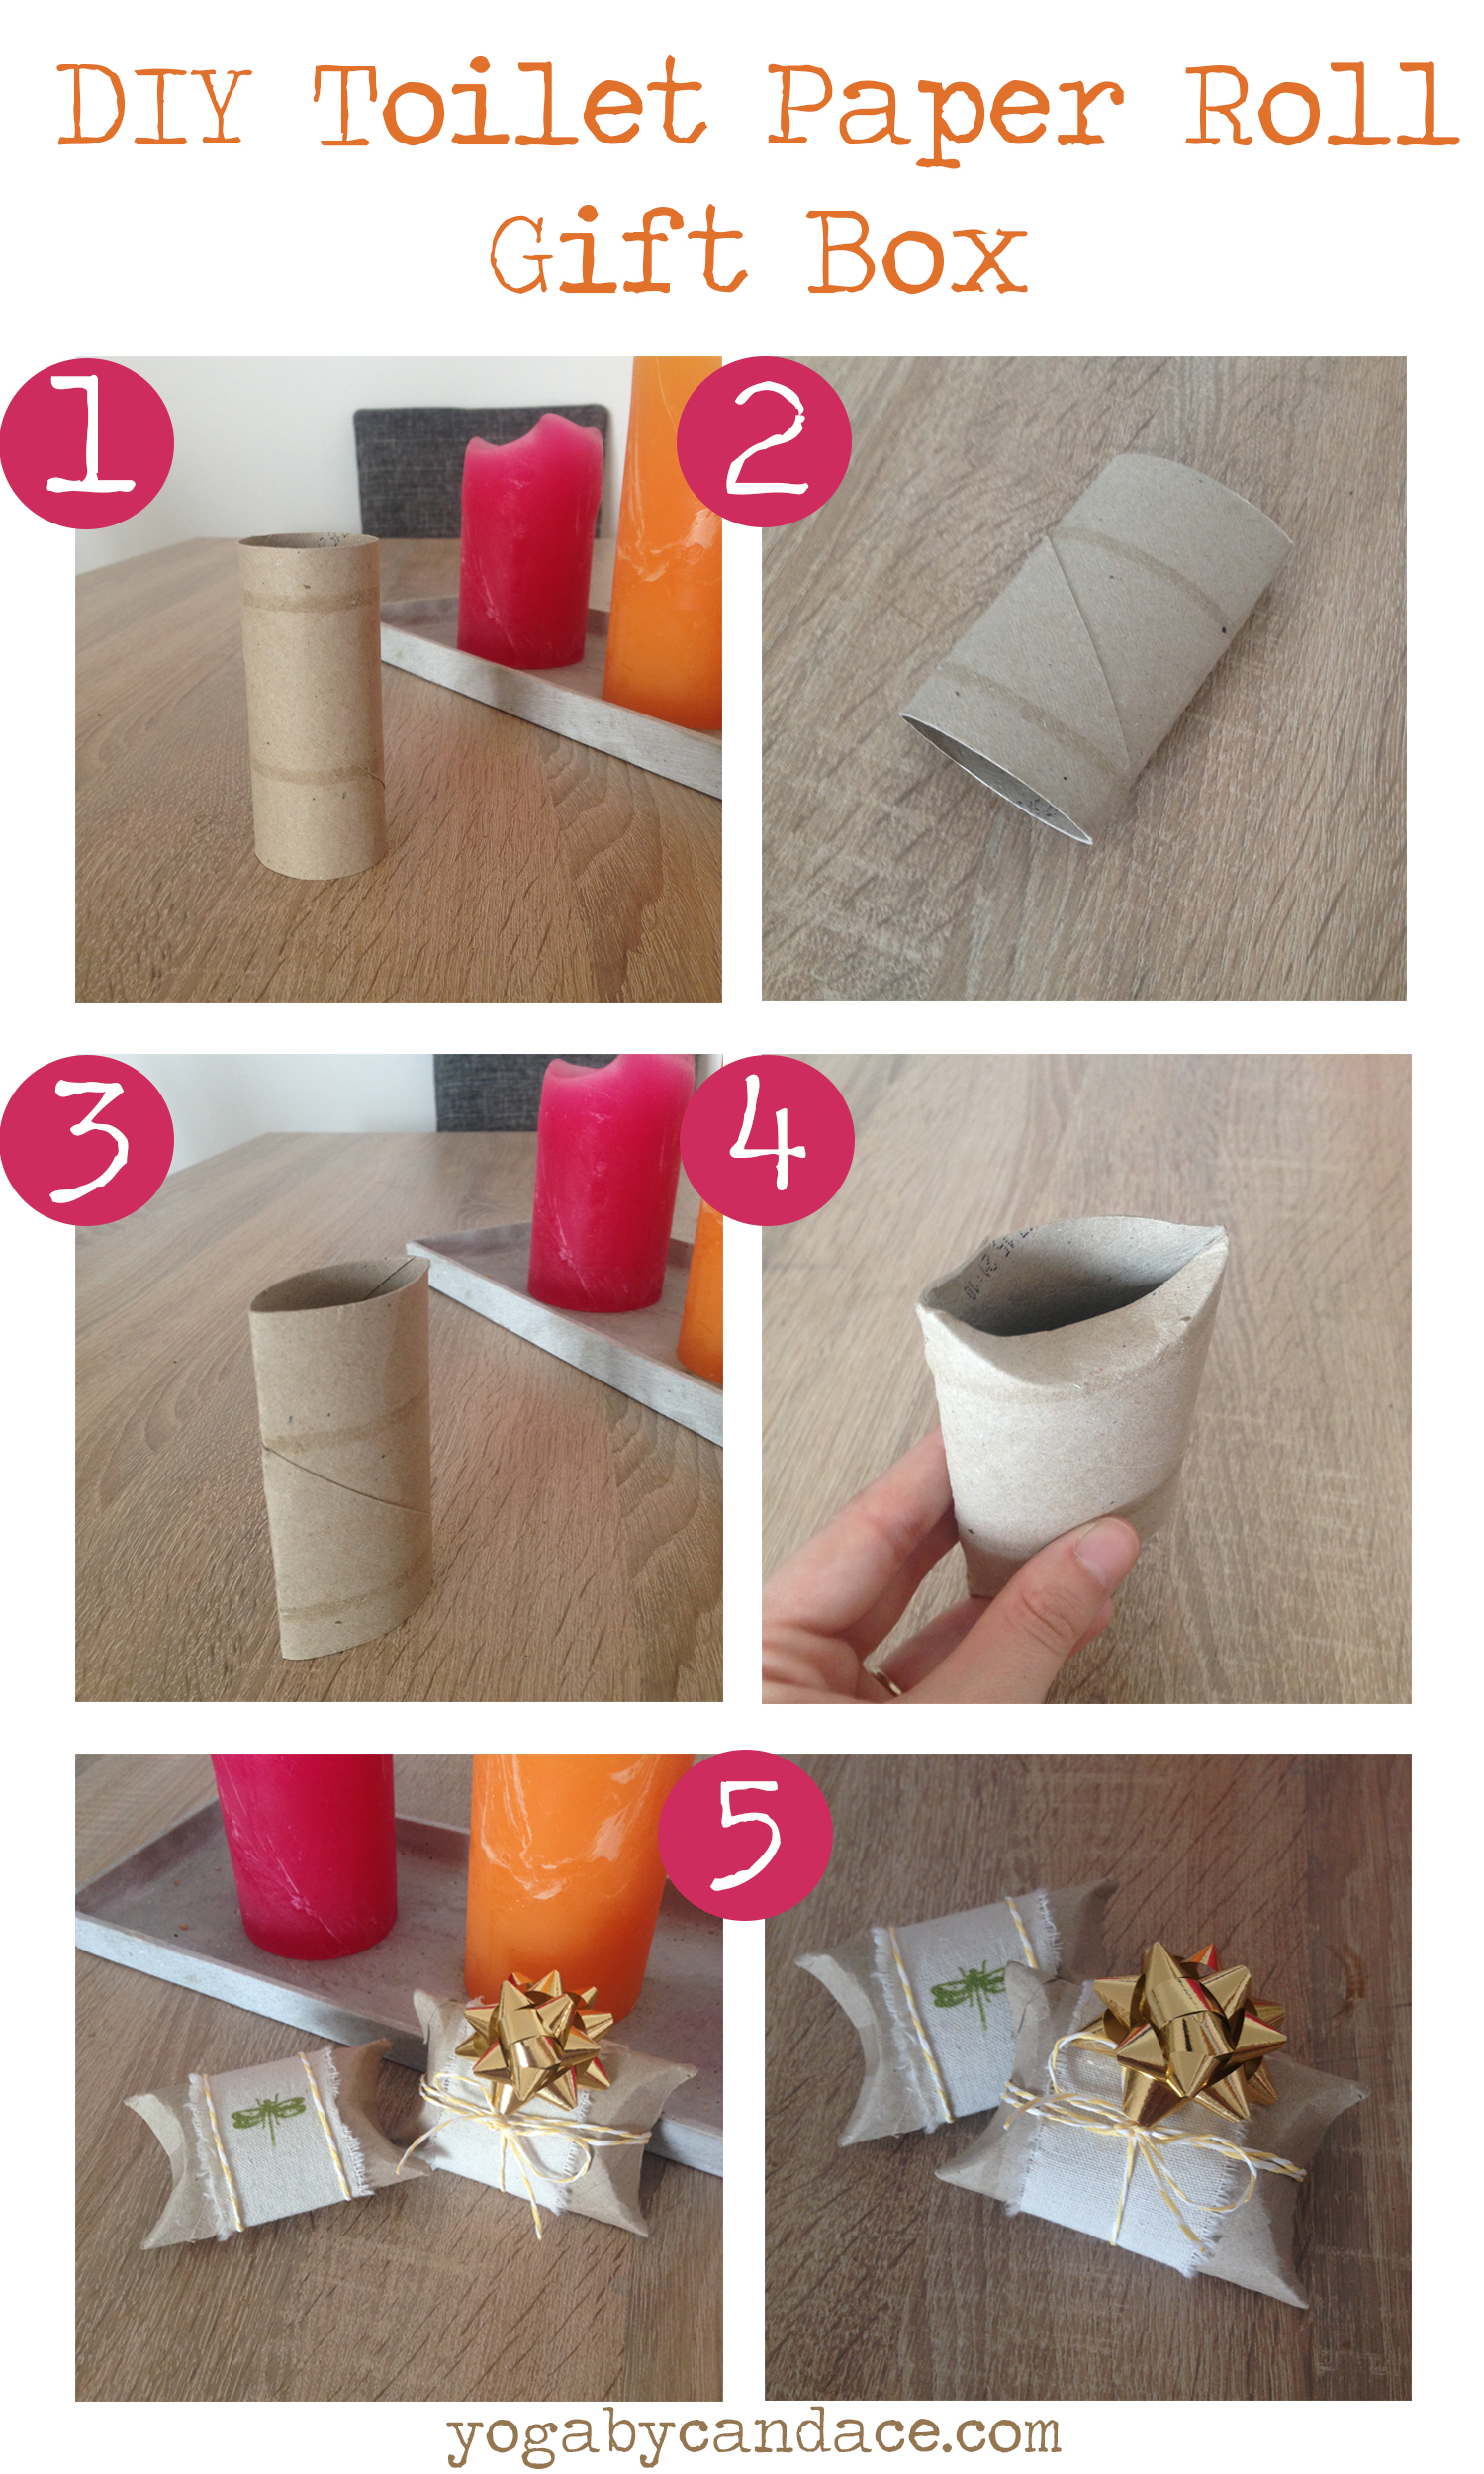 Earth Day: Spring Upcycling Projects — YOGABYCANDACE